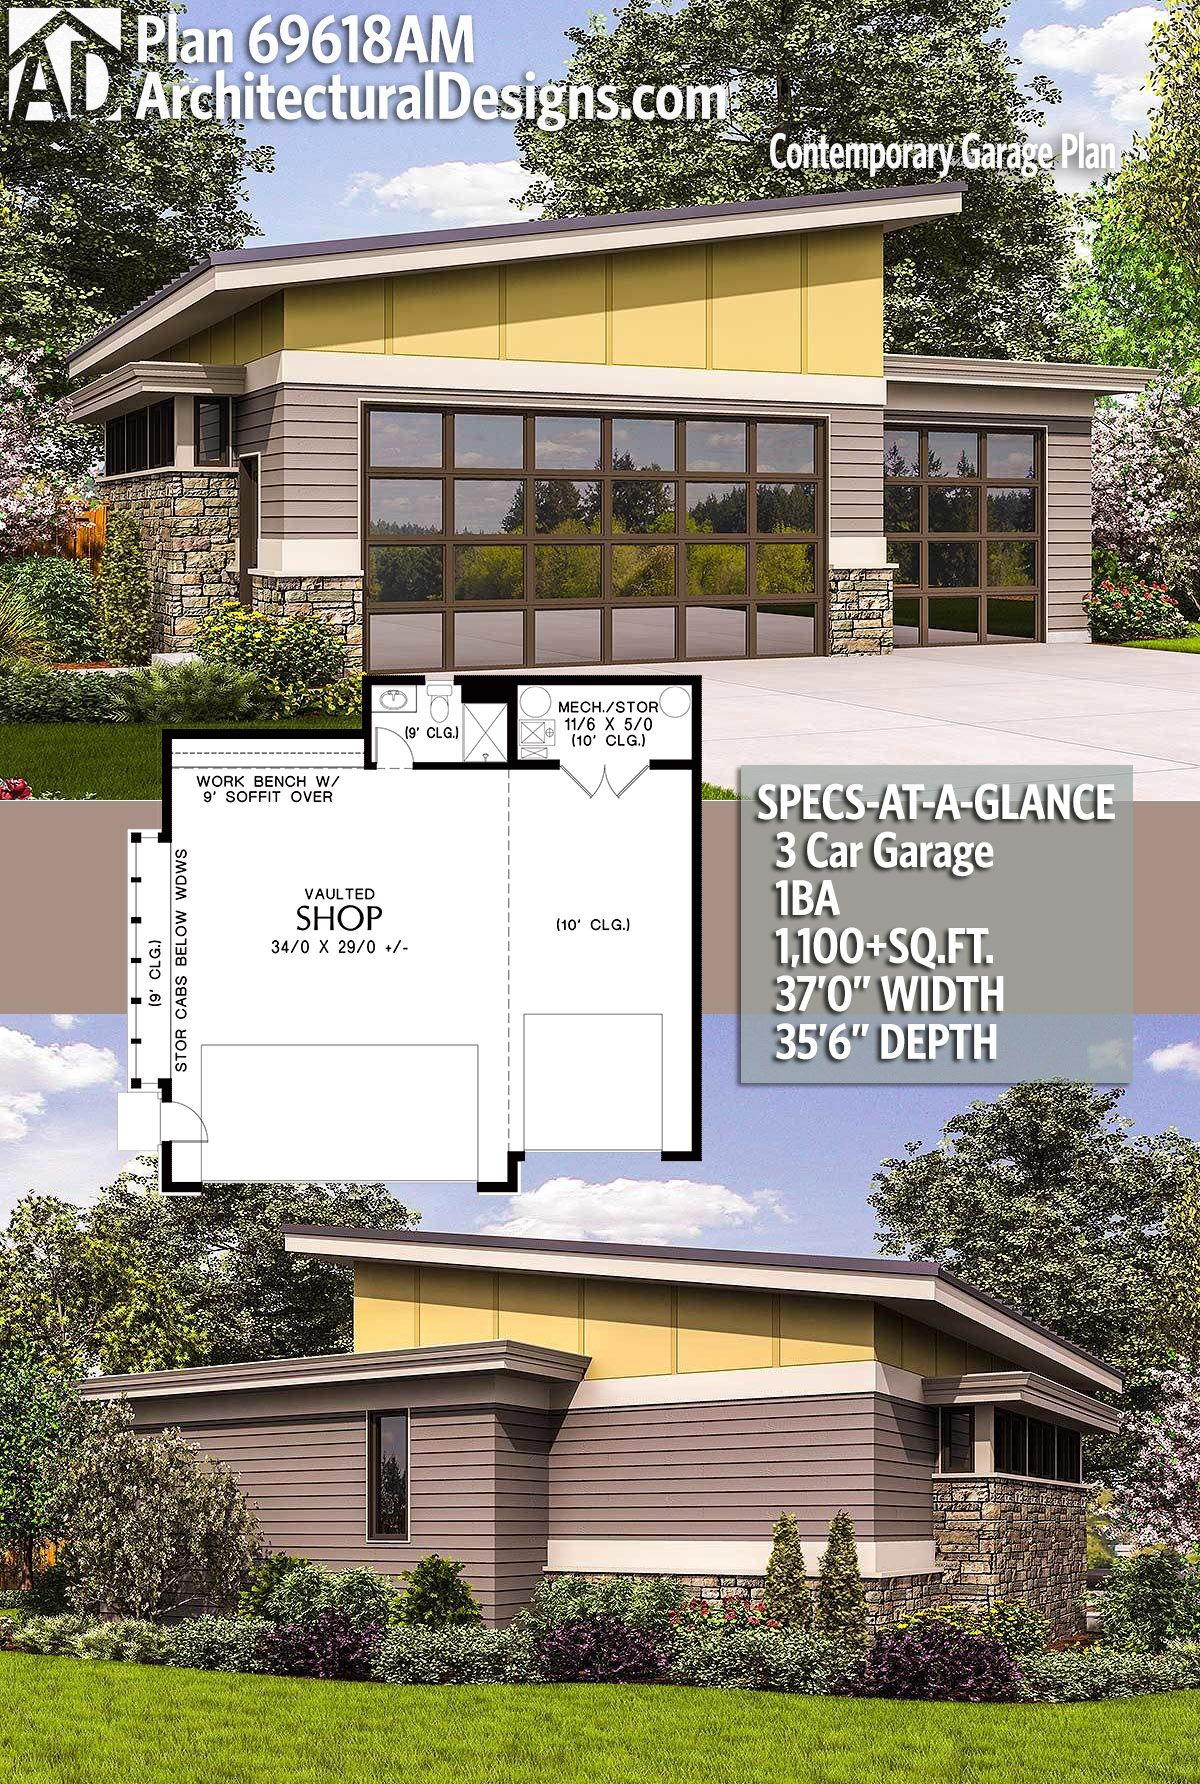 69618am adhouseplans architecturaldesigns houseplan architecture newhome newconstruction garage detachedgarage 3cargarage carriagehouse modern